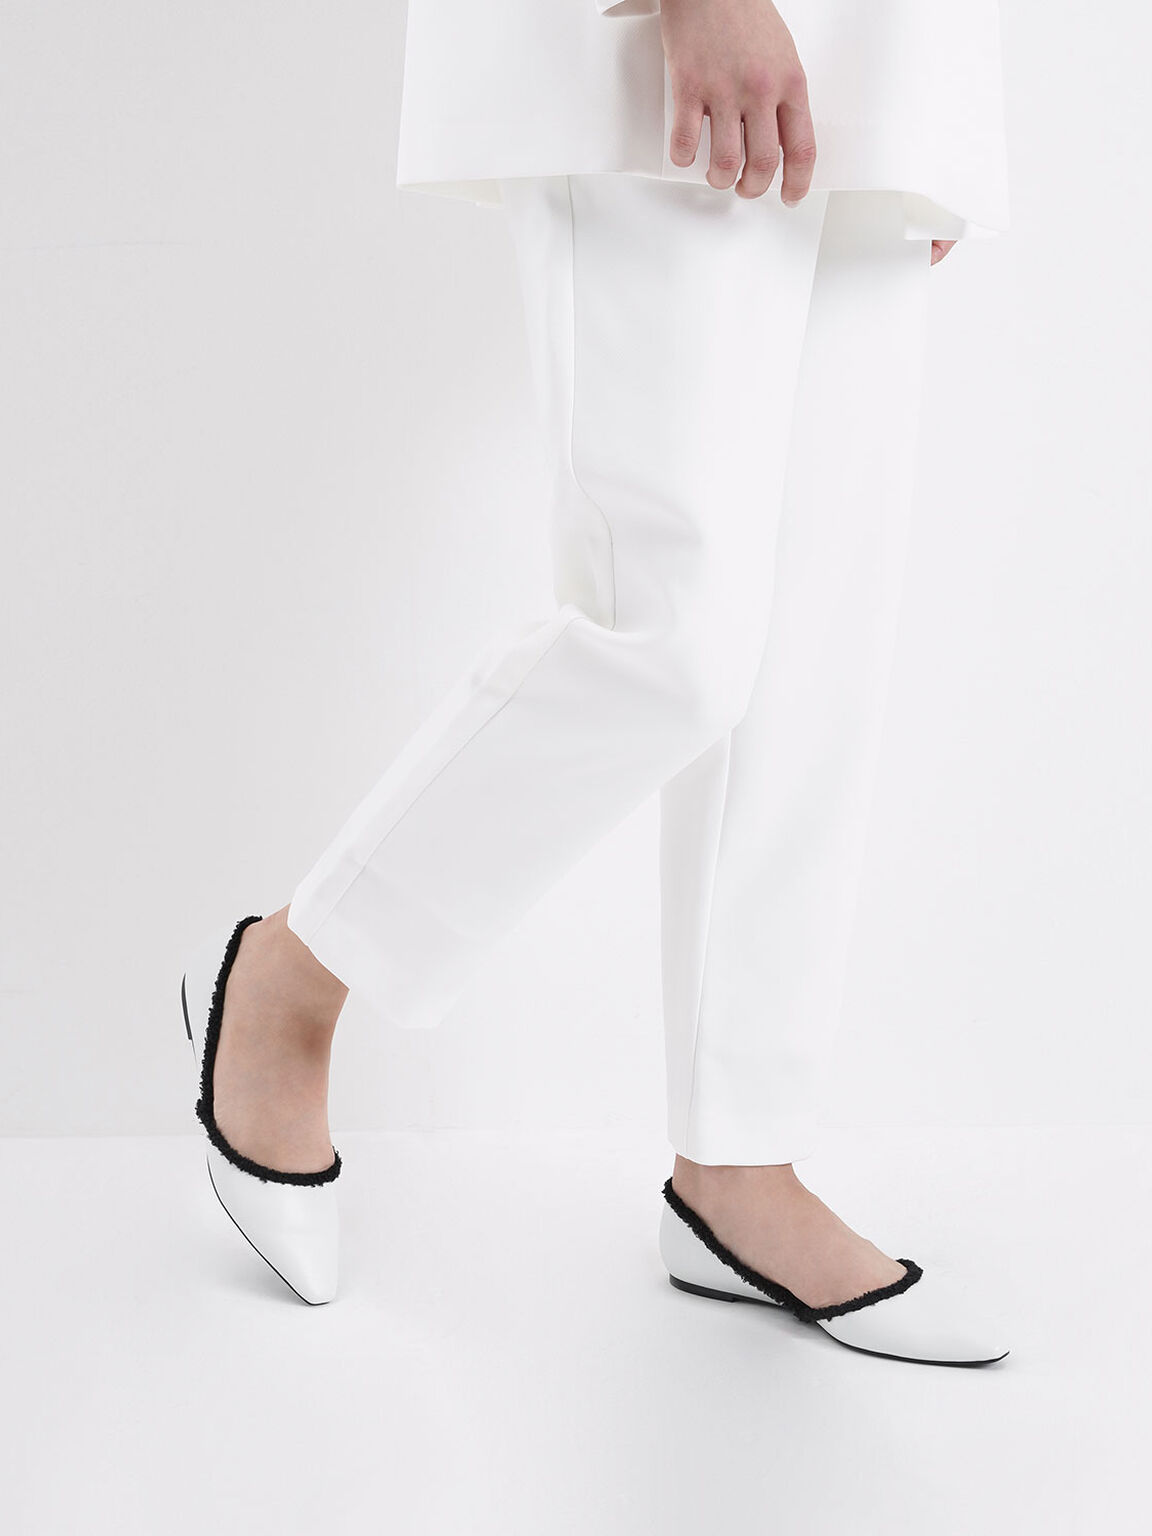 Textured Trim D'Orsay Flats, White, hi-res